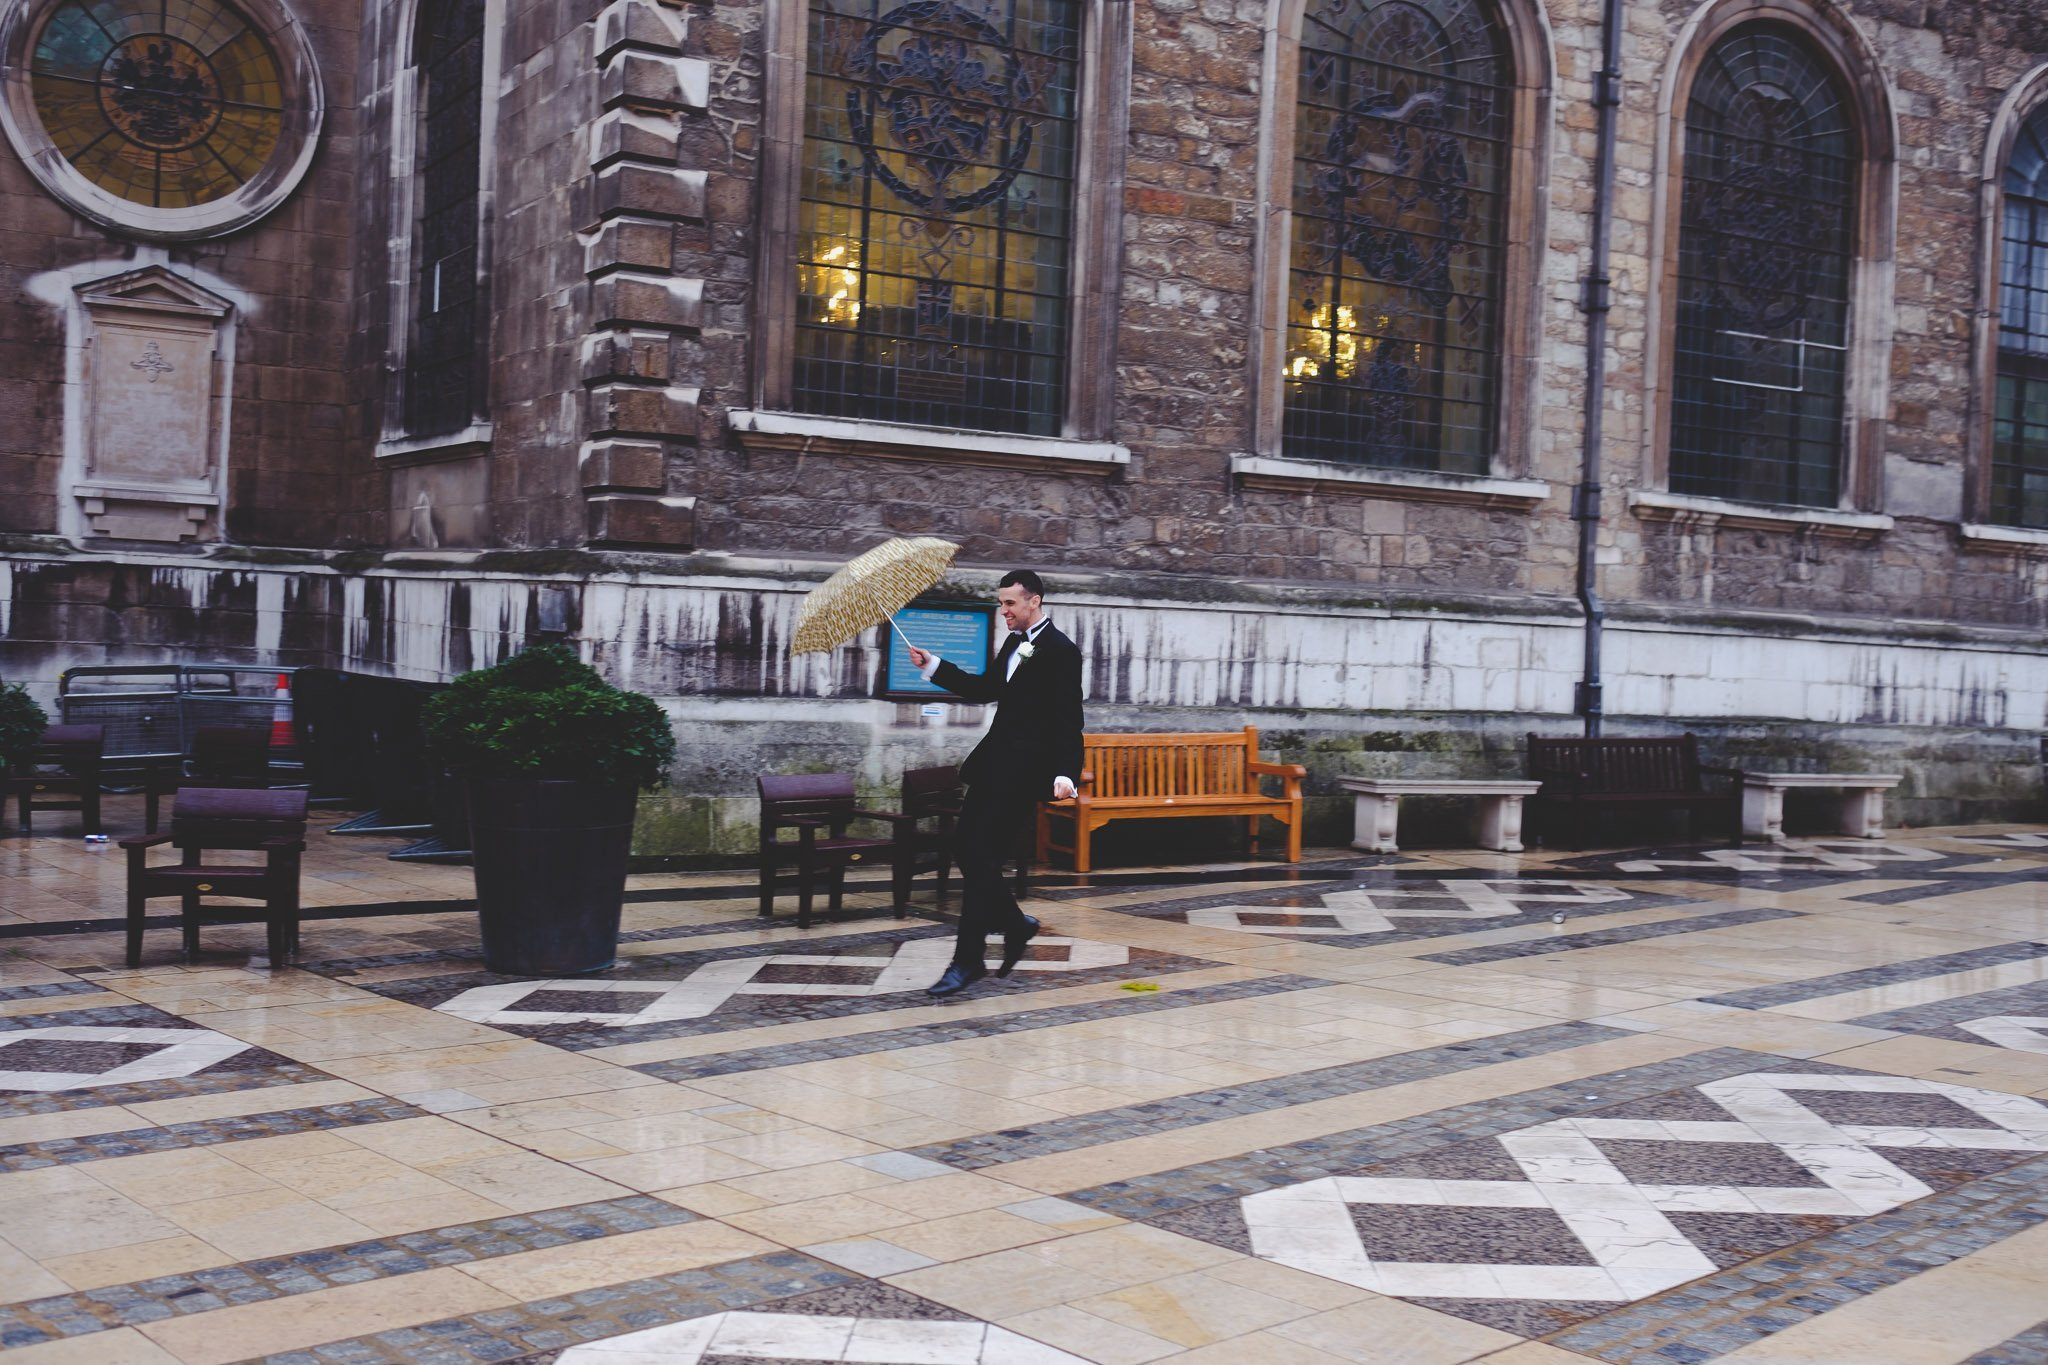 Groom dancing in the rain outside St Lawrence Jewry Guildhall